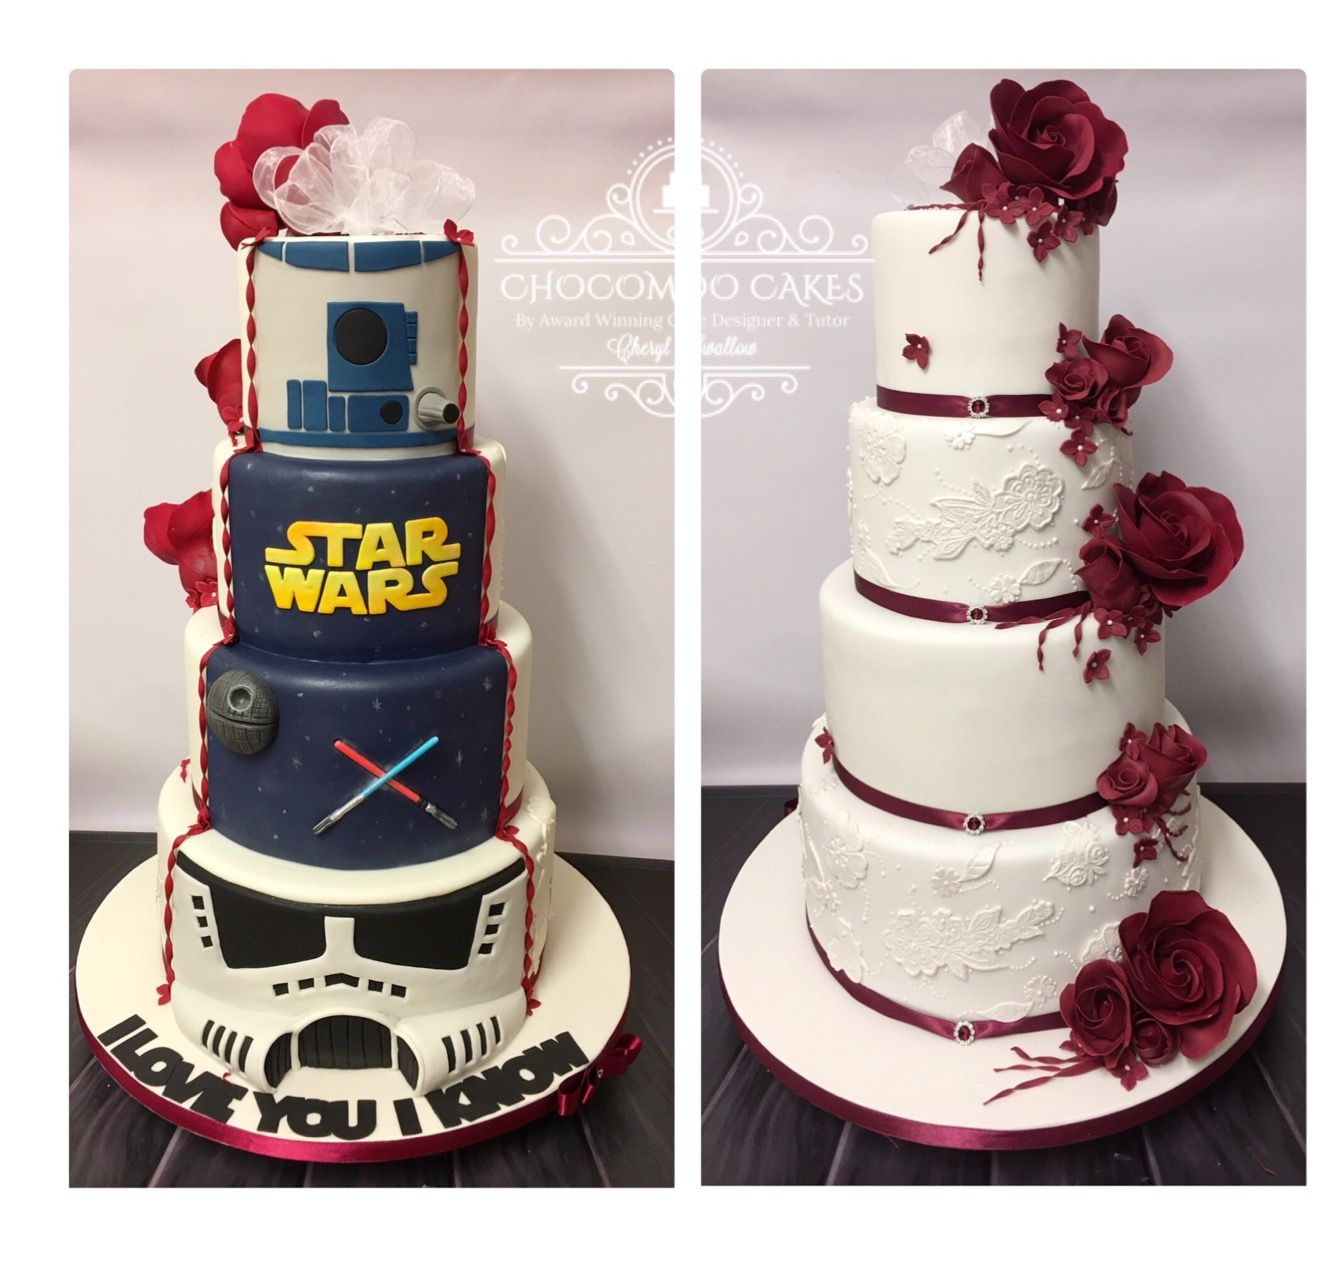 Geek Wedding Ideas: Half Wedding Cake Half Star Wars